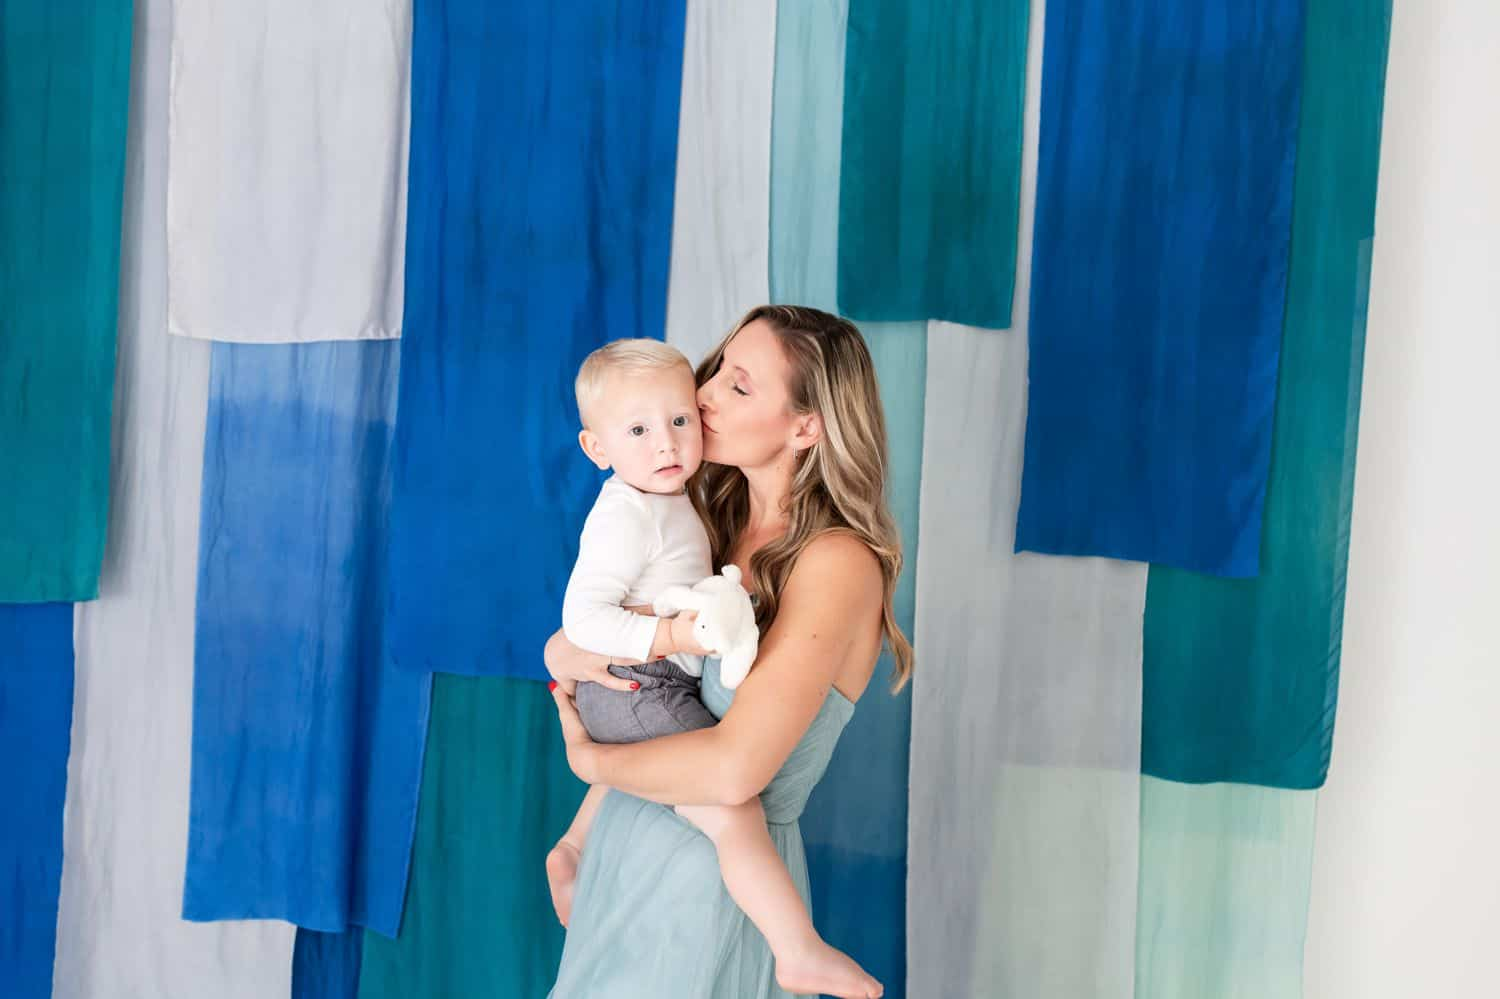 A mom kisses her toddler son on the cheek in front of a blue-draped wall.